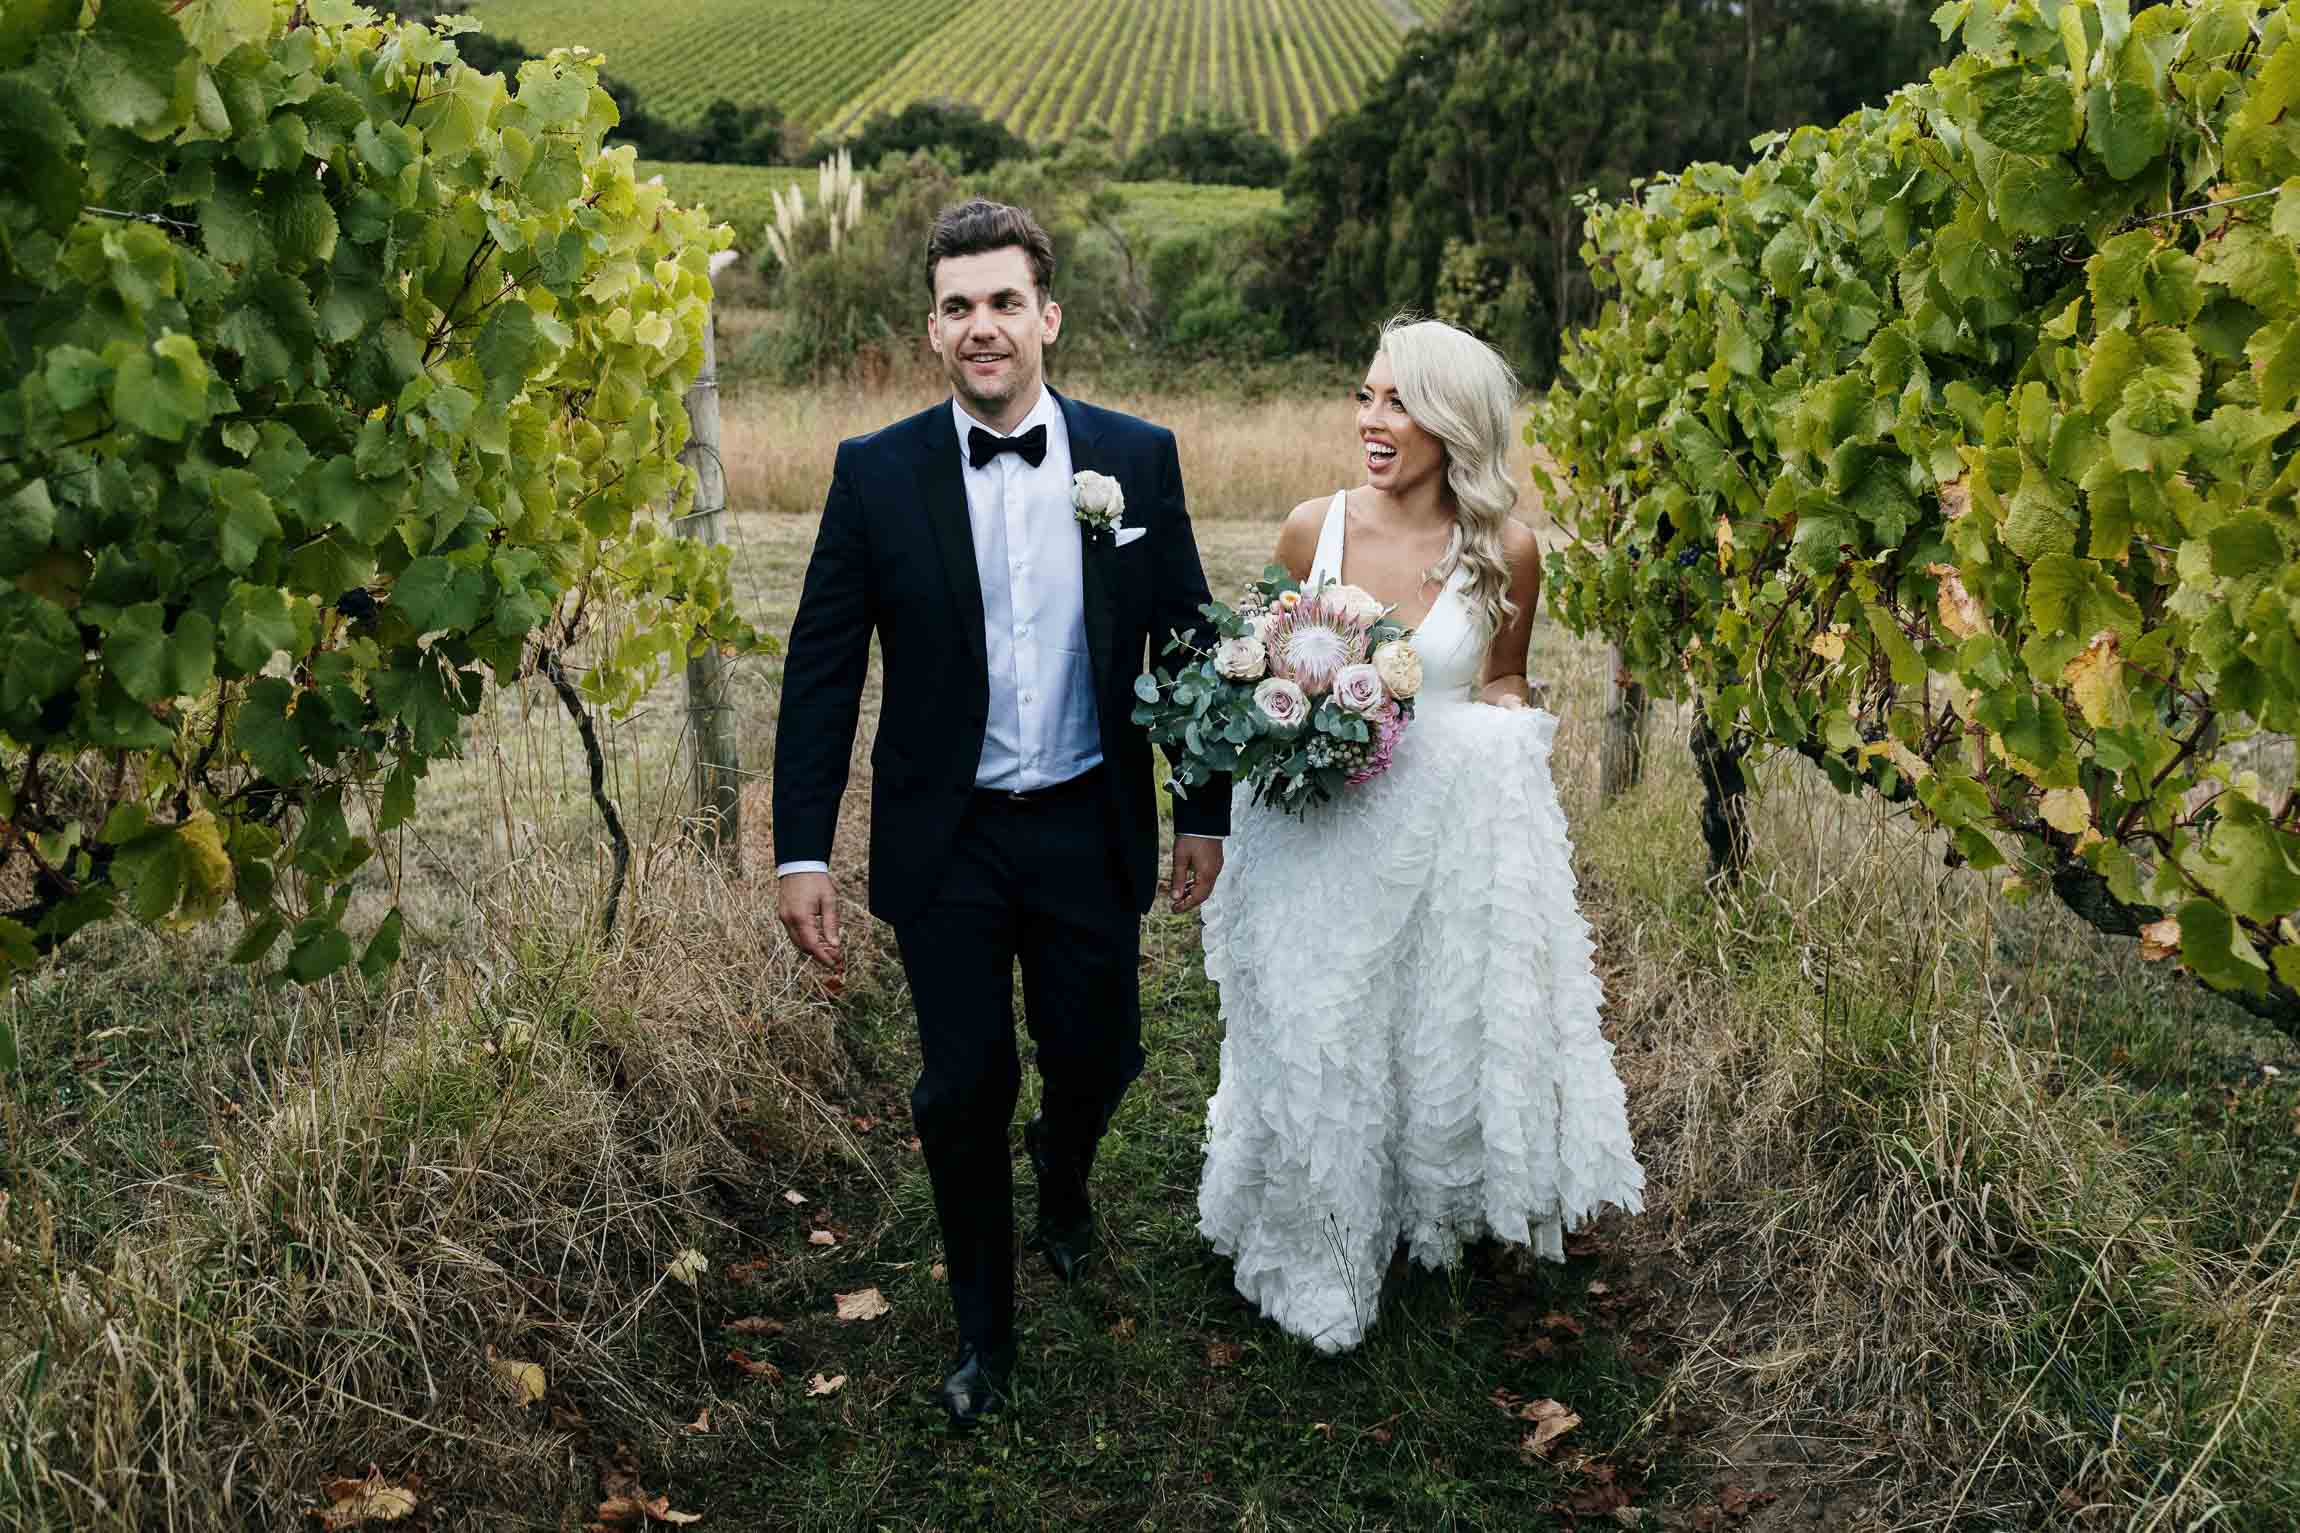 lachlan-scallion-melbourne-victoria-austrlia-mornington-peninsula-candid-relaxed-natural-chilled-wedding-photographyemma-will-tucks-wine-348.jpg